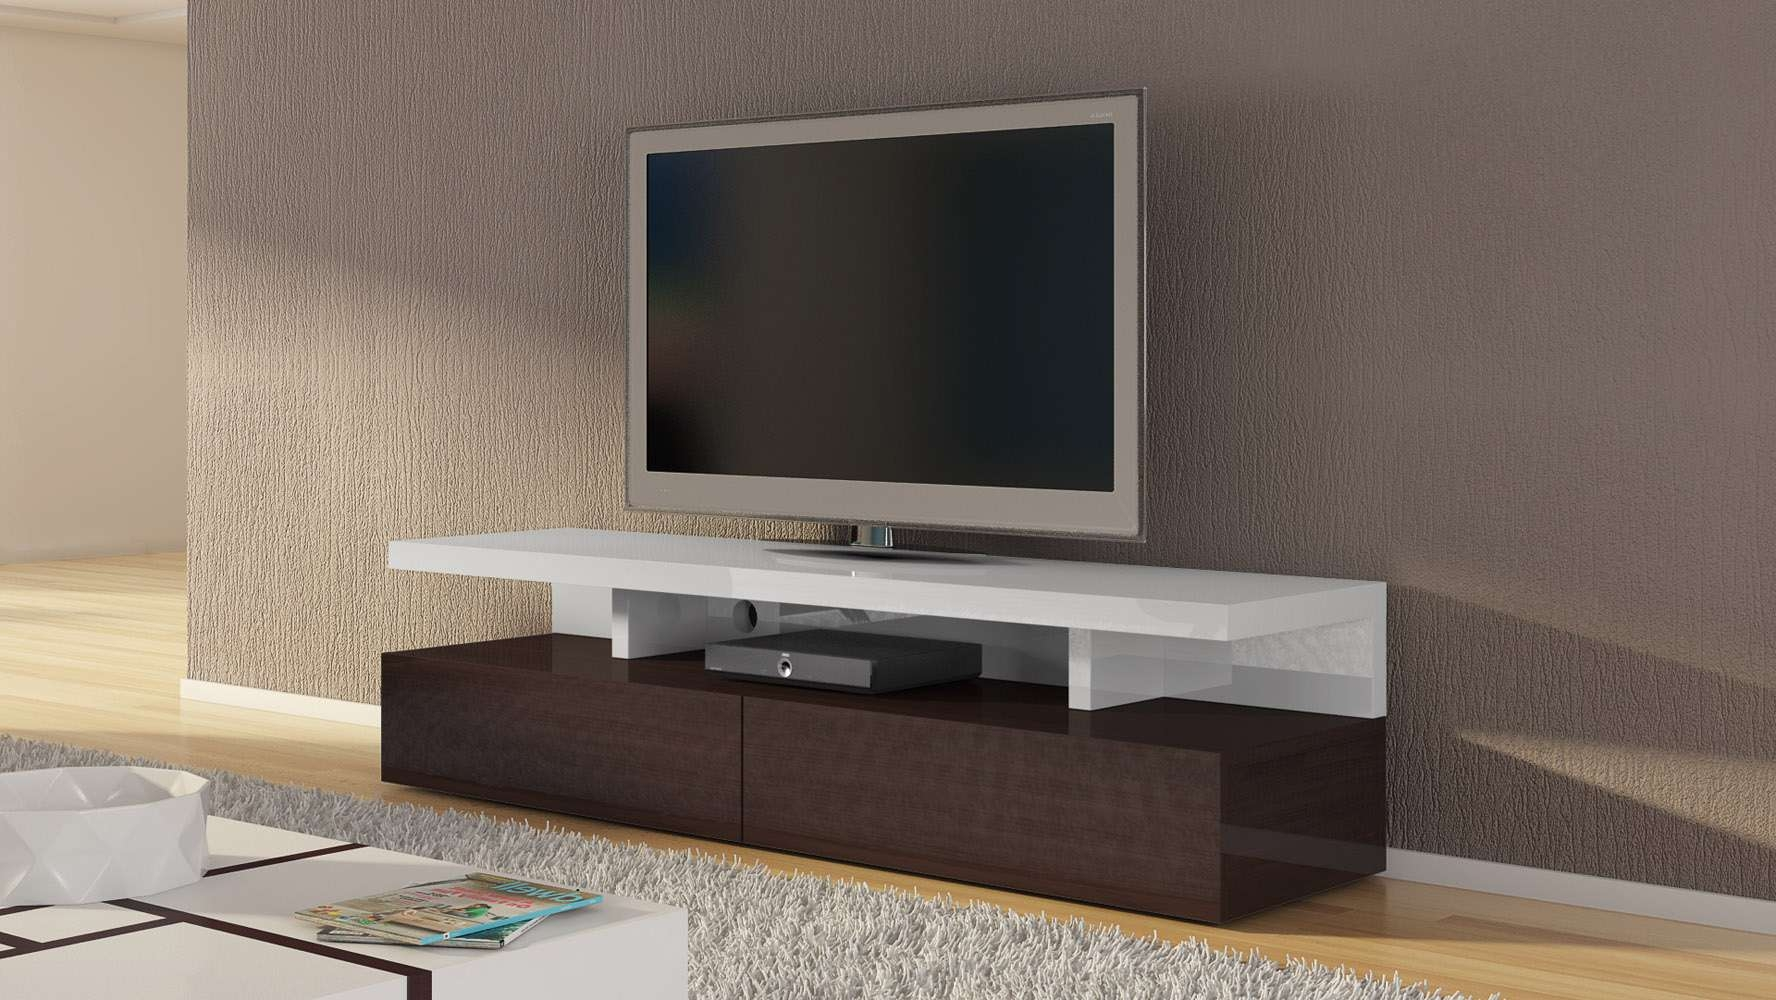 Tv Stand : High Tv Stand Tv027 Modern In Red Gloss Free Shipping Intended For Red Gloss Tv Stands (View 12 of 15)